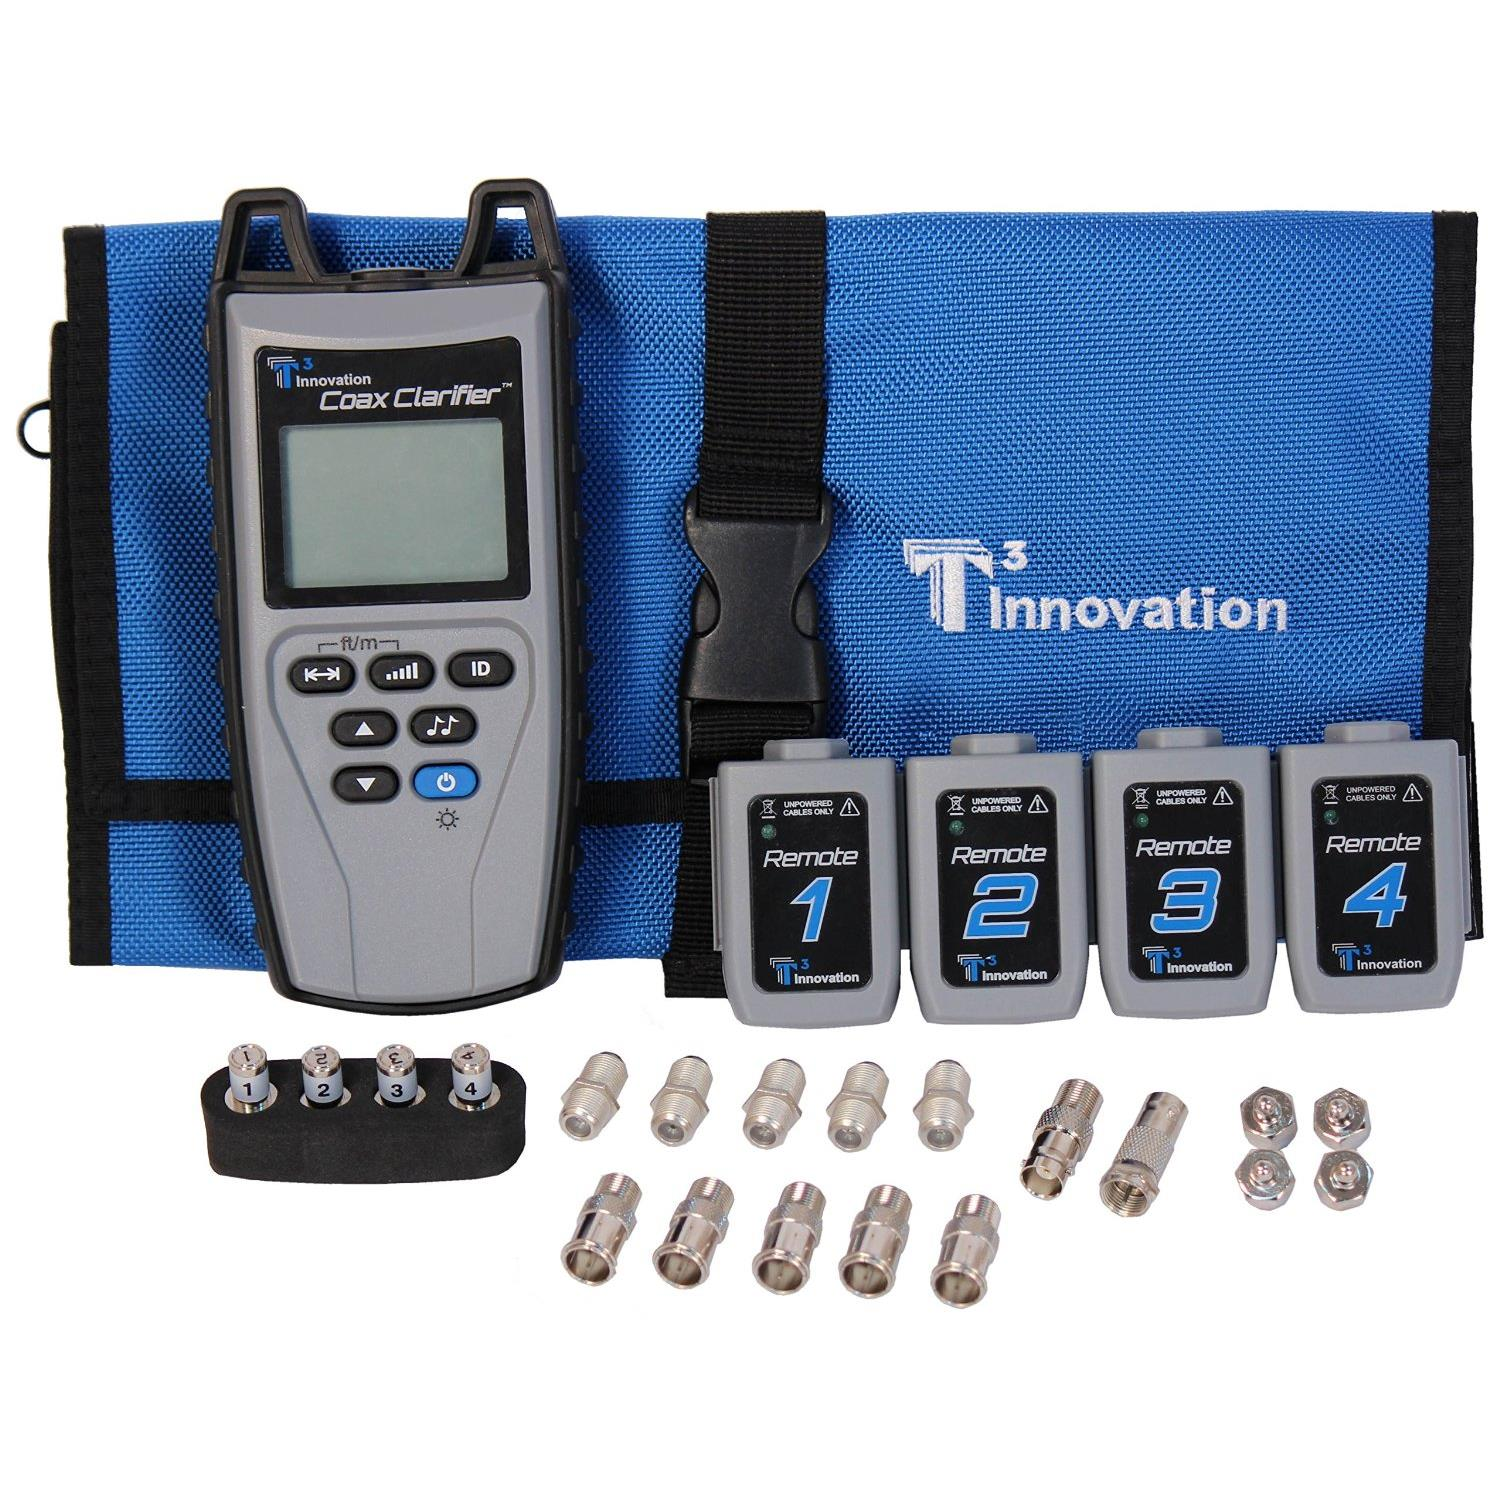 T3 Innovation CC210 Coax Clarifier Tester and 4 No 1-4 RF Remotes